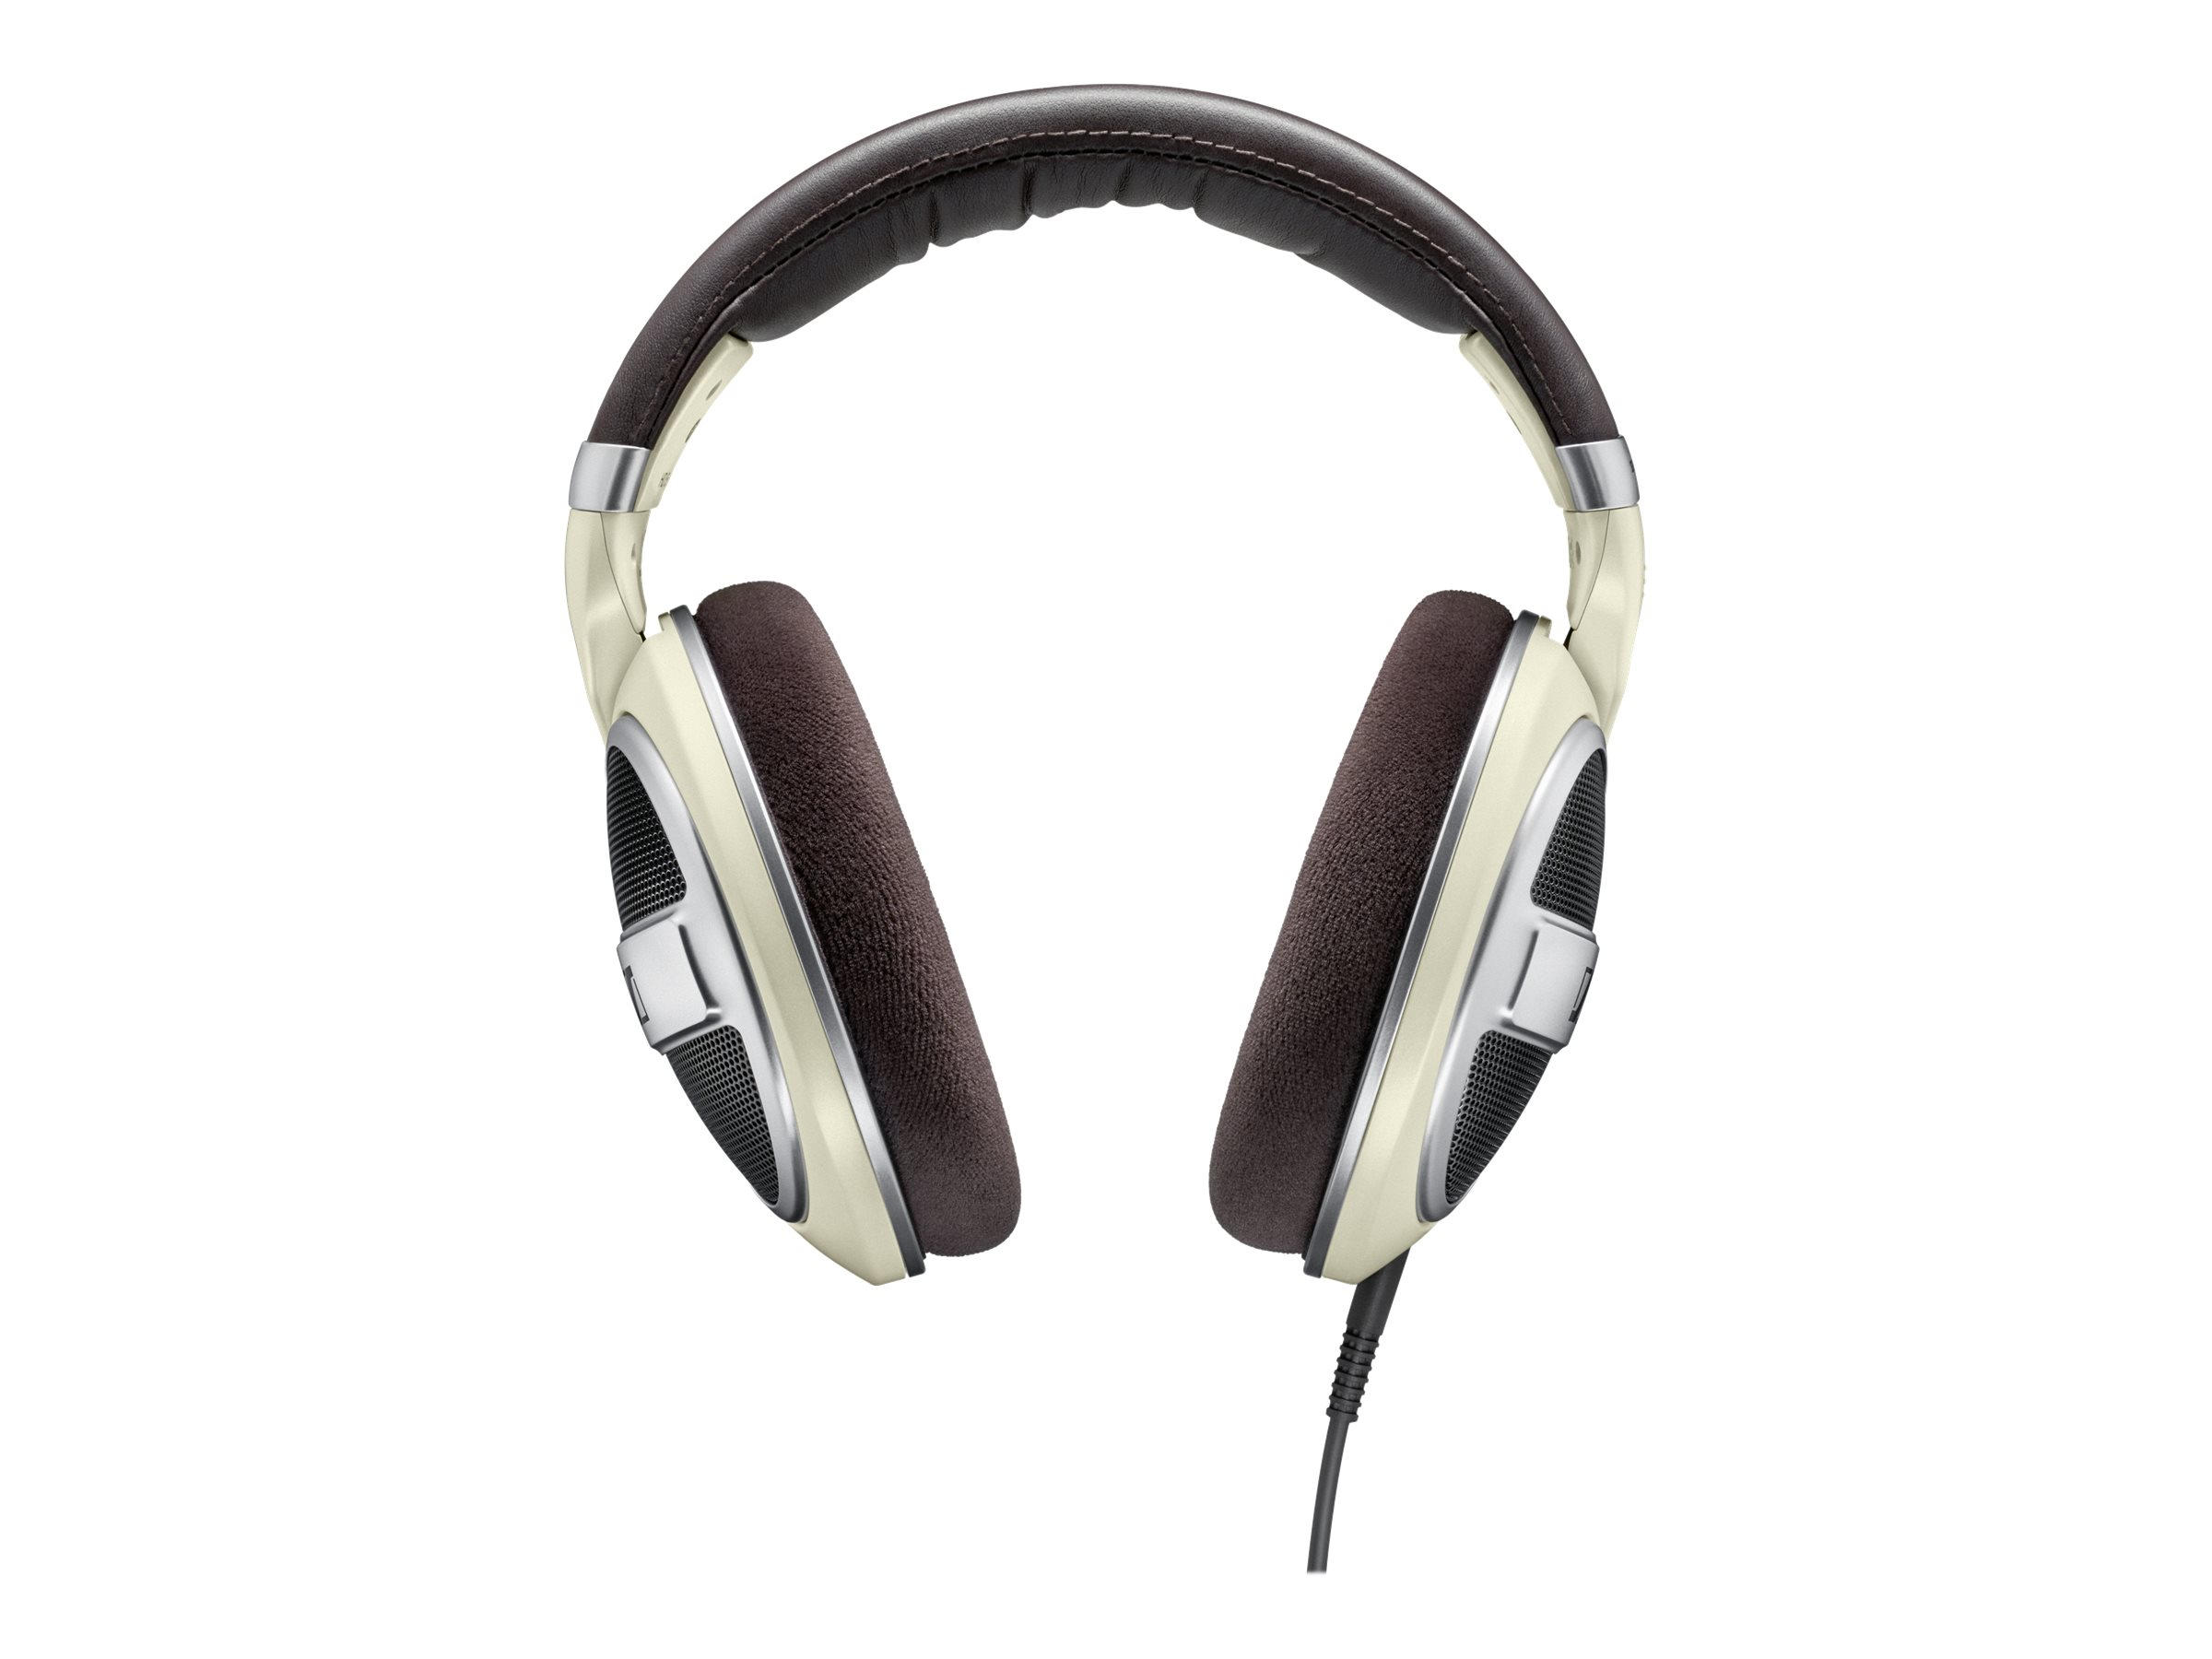 Image for Sennheiser Hd 599 - Headphones from Circuit City